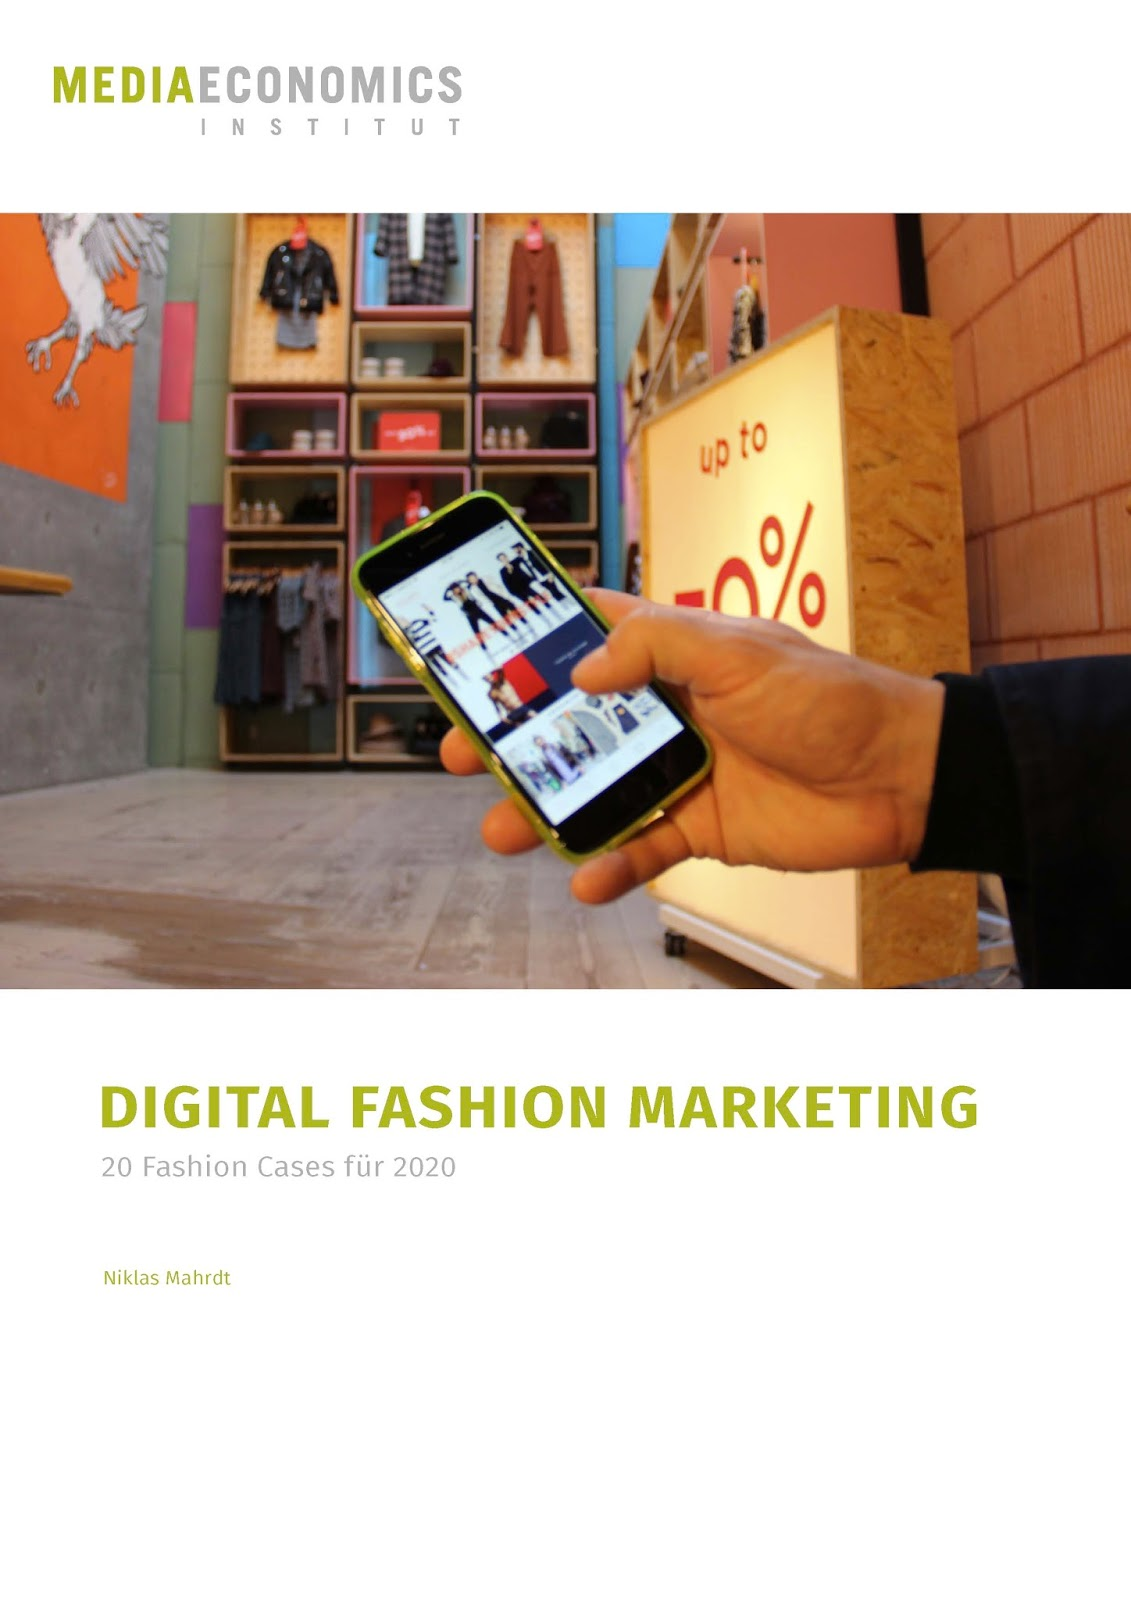 Cover_Digital_Fashion_Marketing__Niklas Mahrdt_Media_Economics_Institut